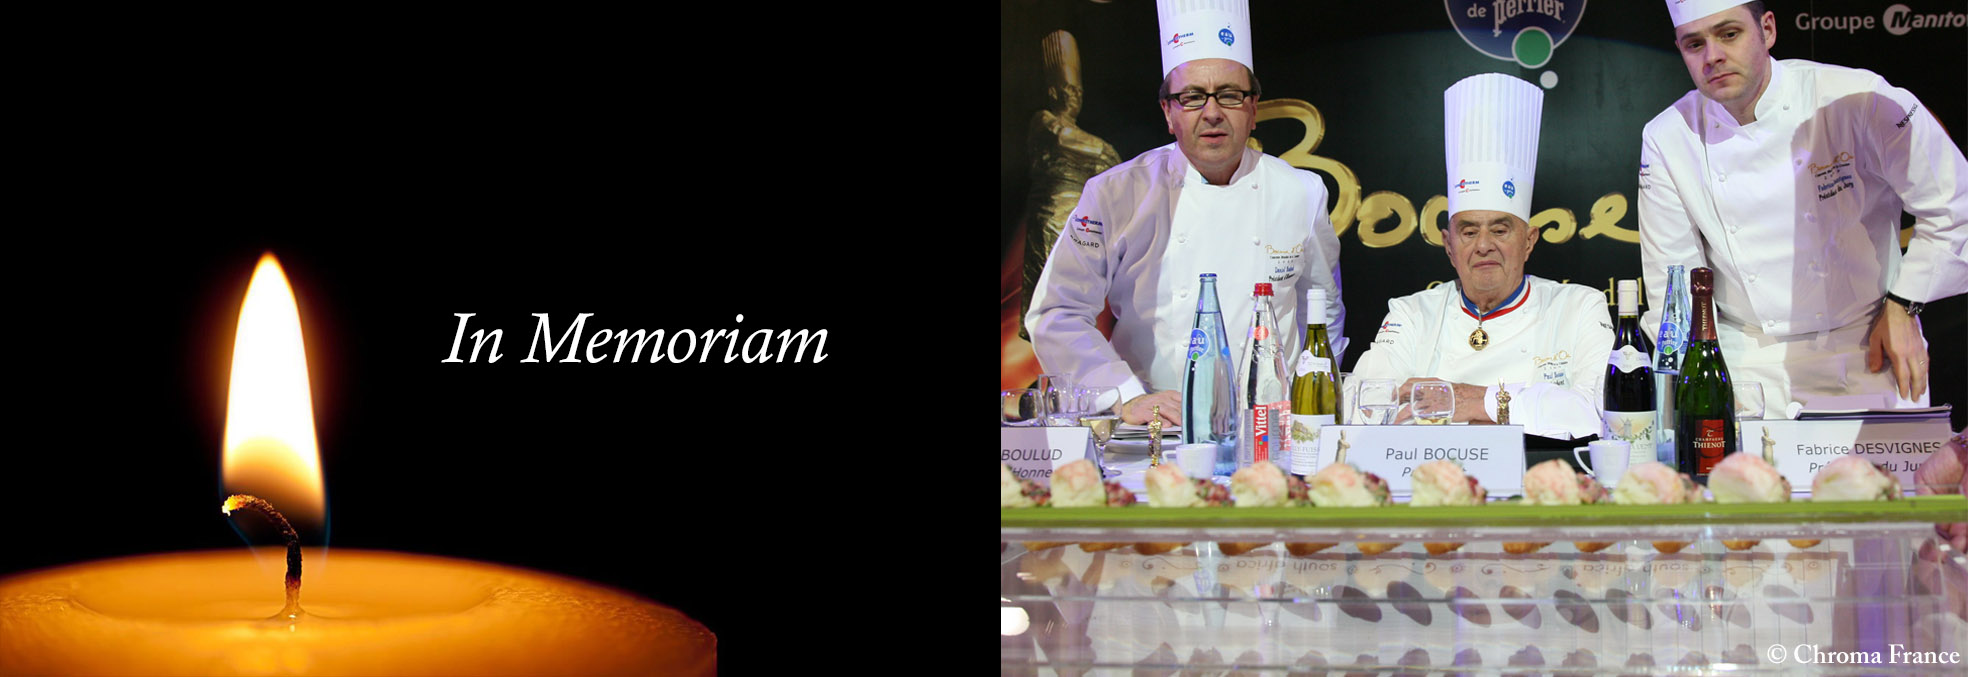 Paul Bocuse in memoriam